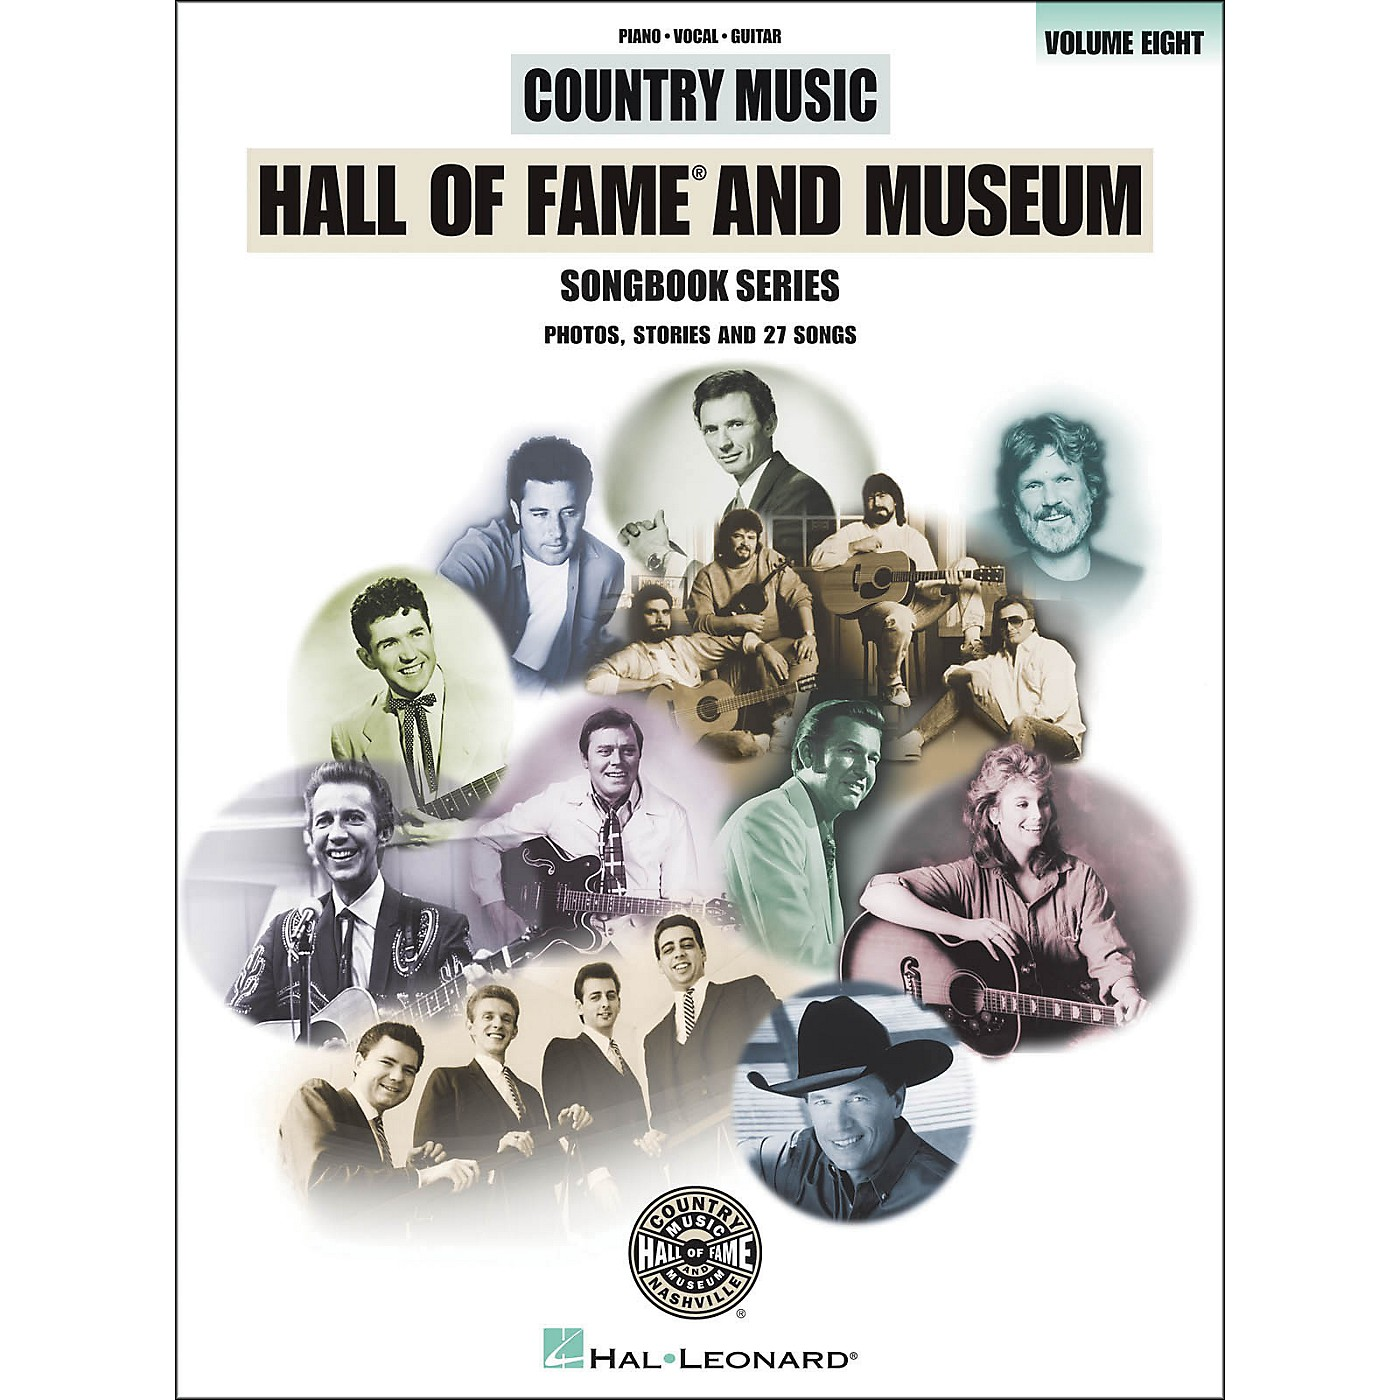 Hal Leonard Country Music Hall Of Fame And Museum - Volume 8 arranged for piano, vocal, and guitar (P/V/G) thumbnail